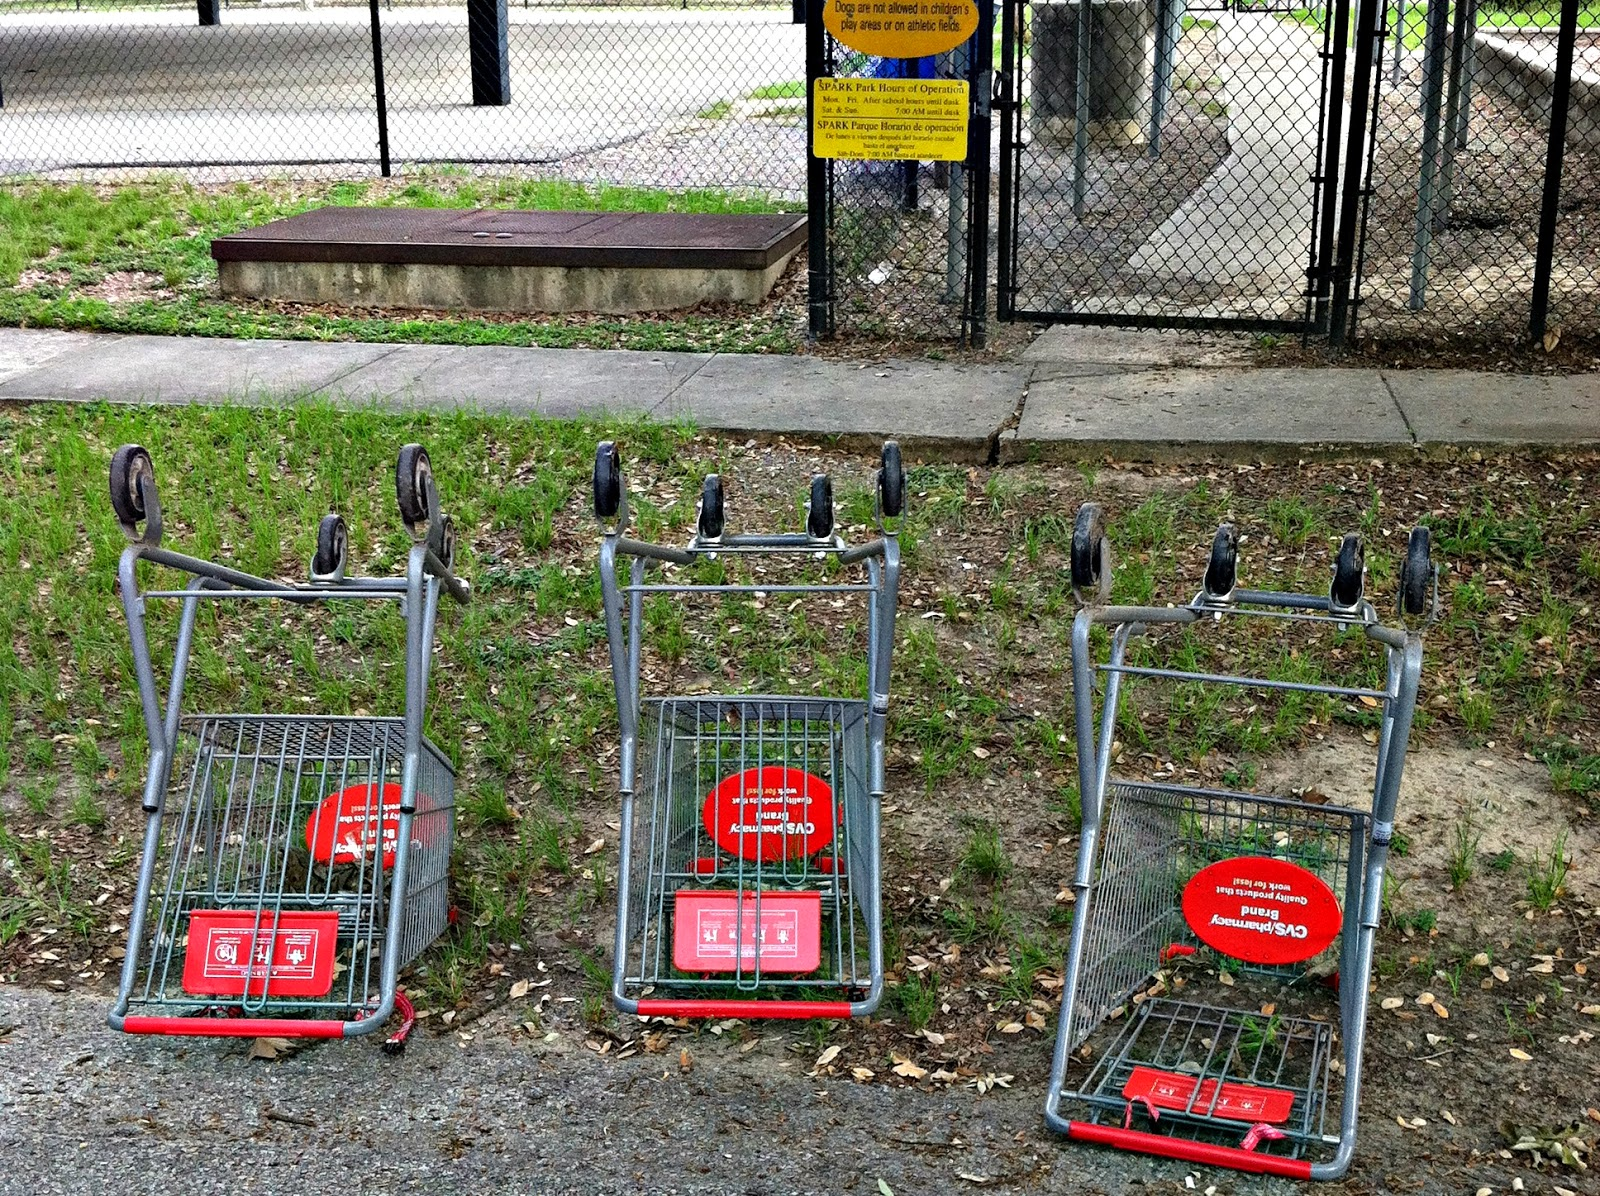 Not of it : The Secret Life Of Shopping Carts: Abandoned Buggies in